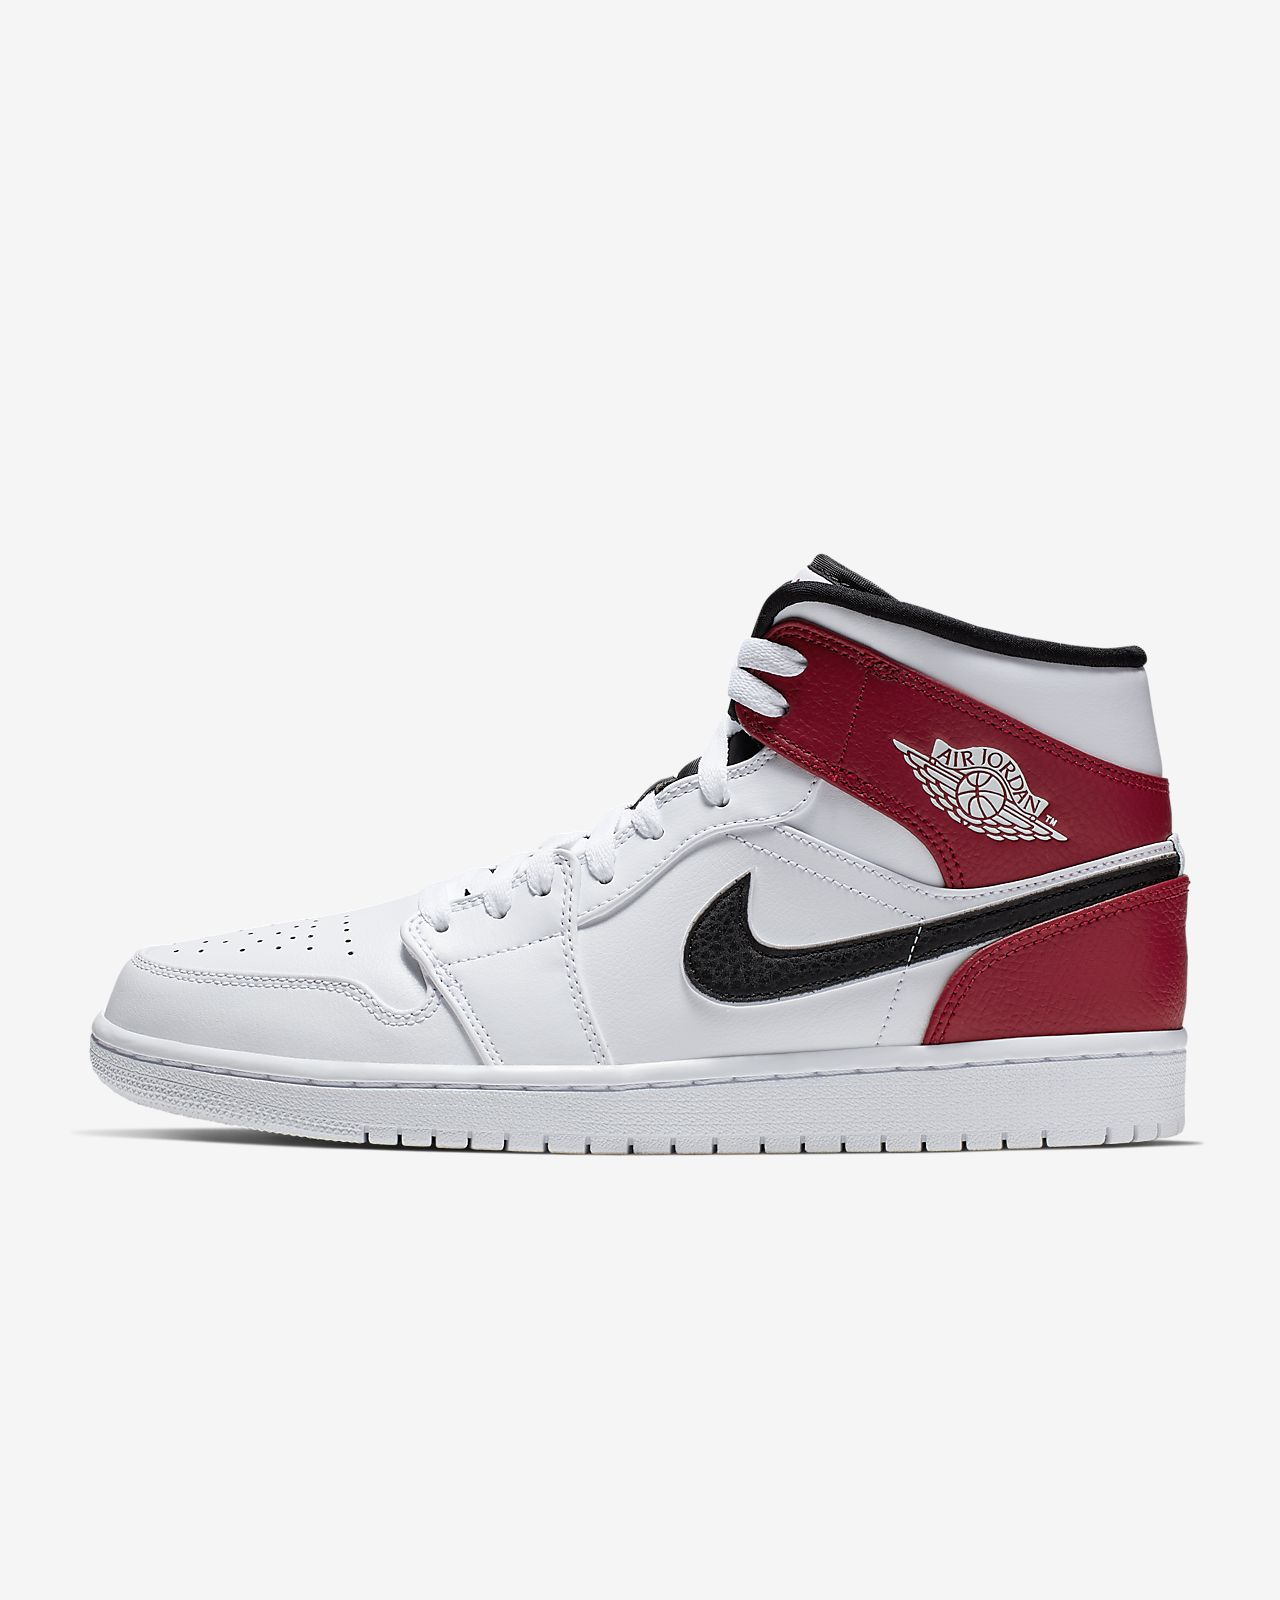 010c5c6130d7 Air Jordan 1 Mid Men s Shoe. Nike.com IE